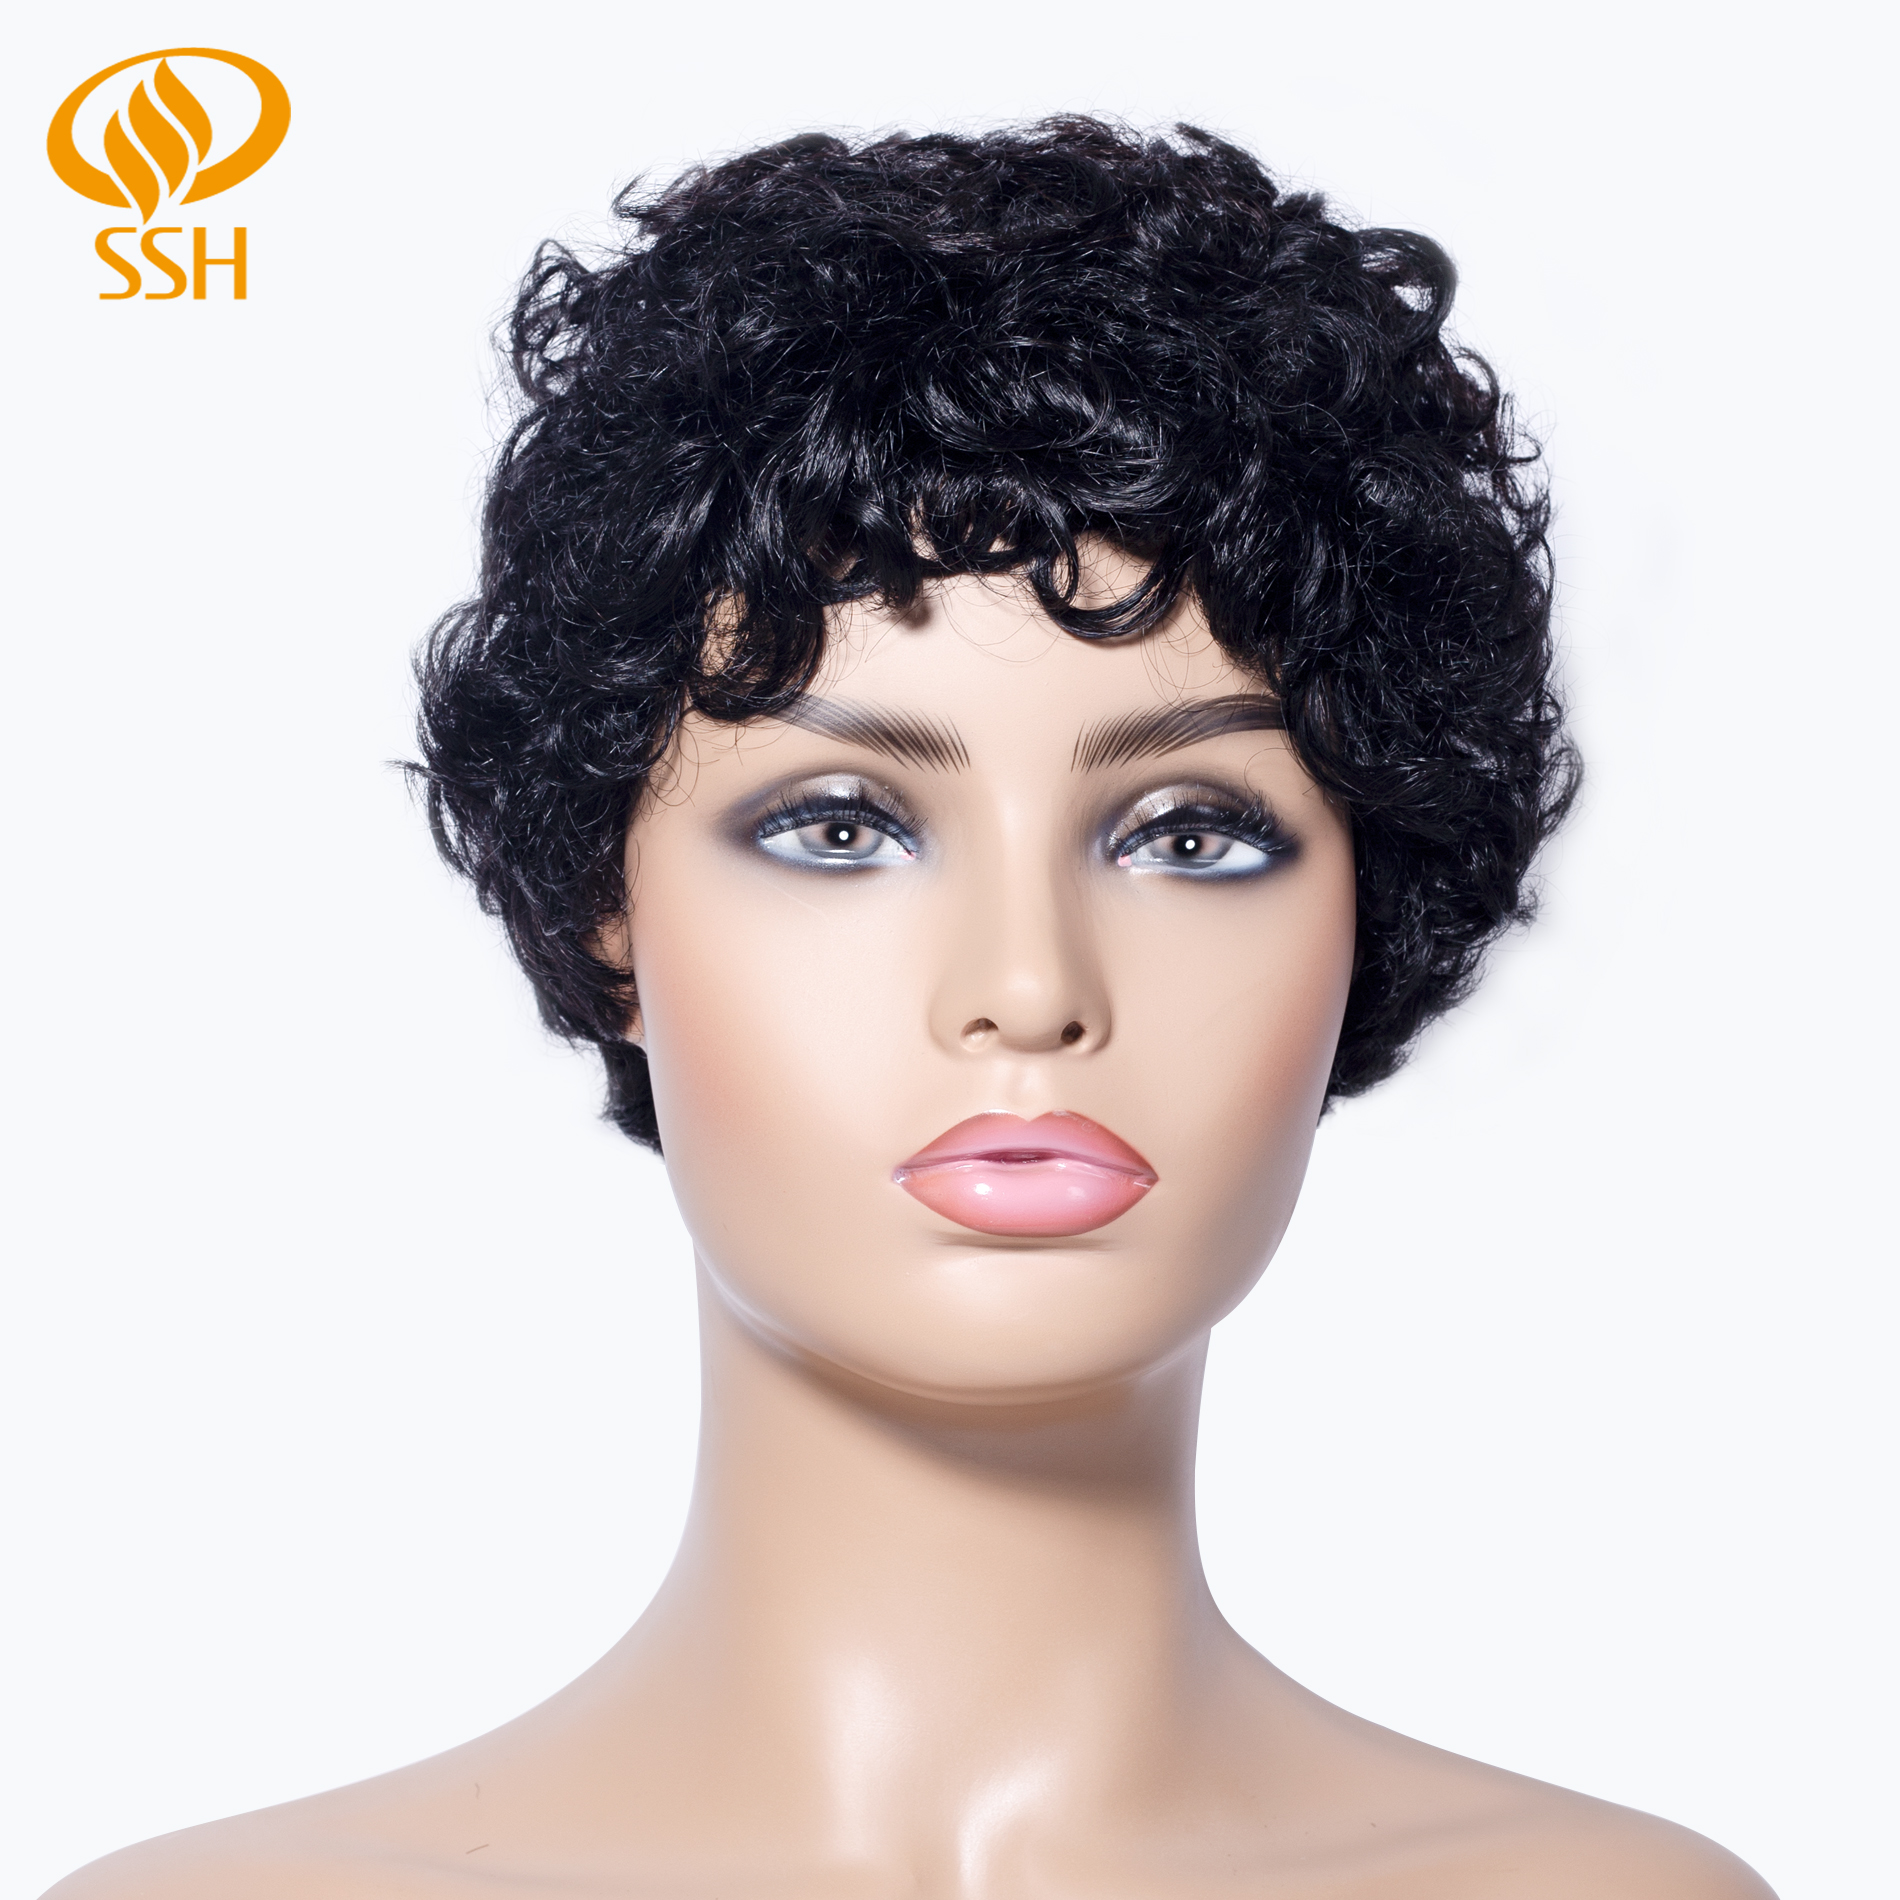 SSH Short Afro Wave Wig Human Hair Black Color With Brazilian Hair Wigs For African Women